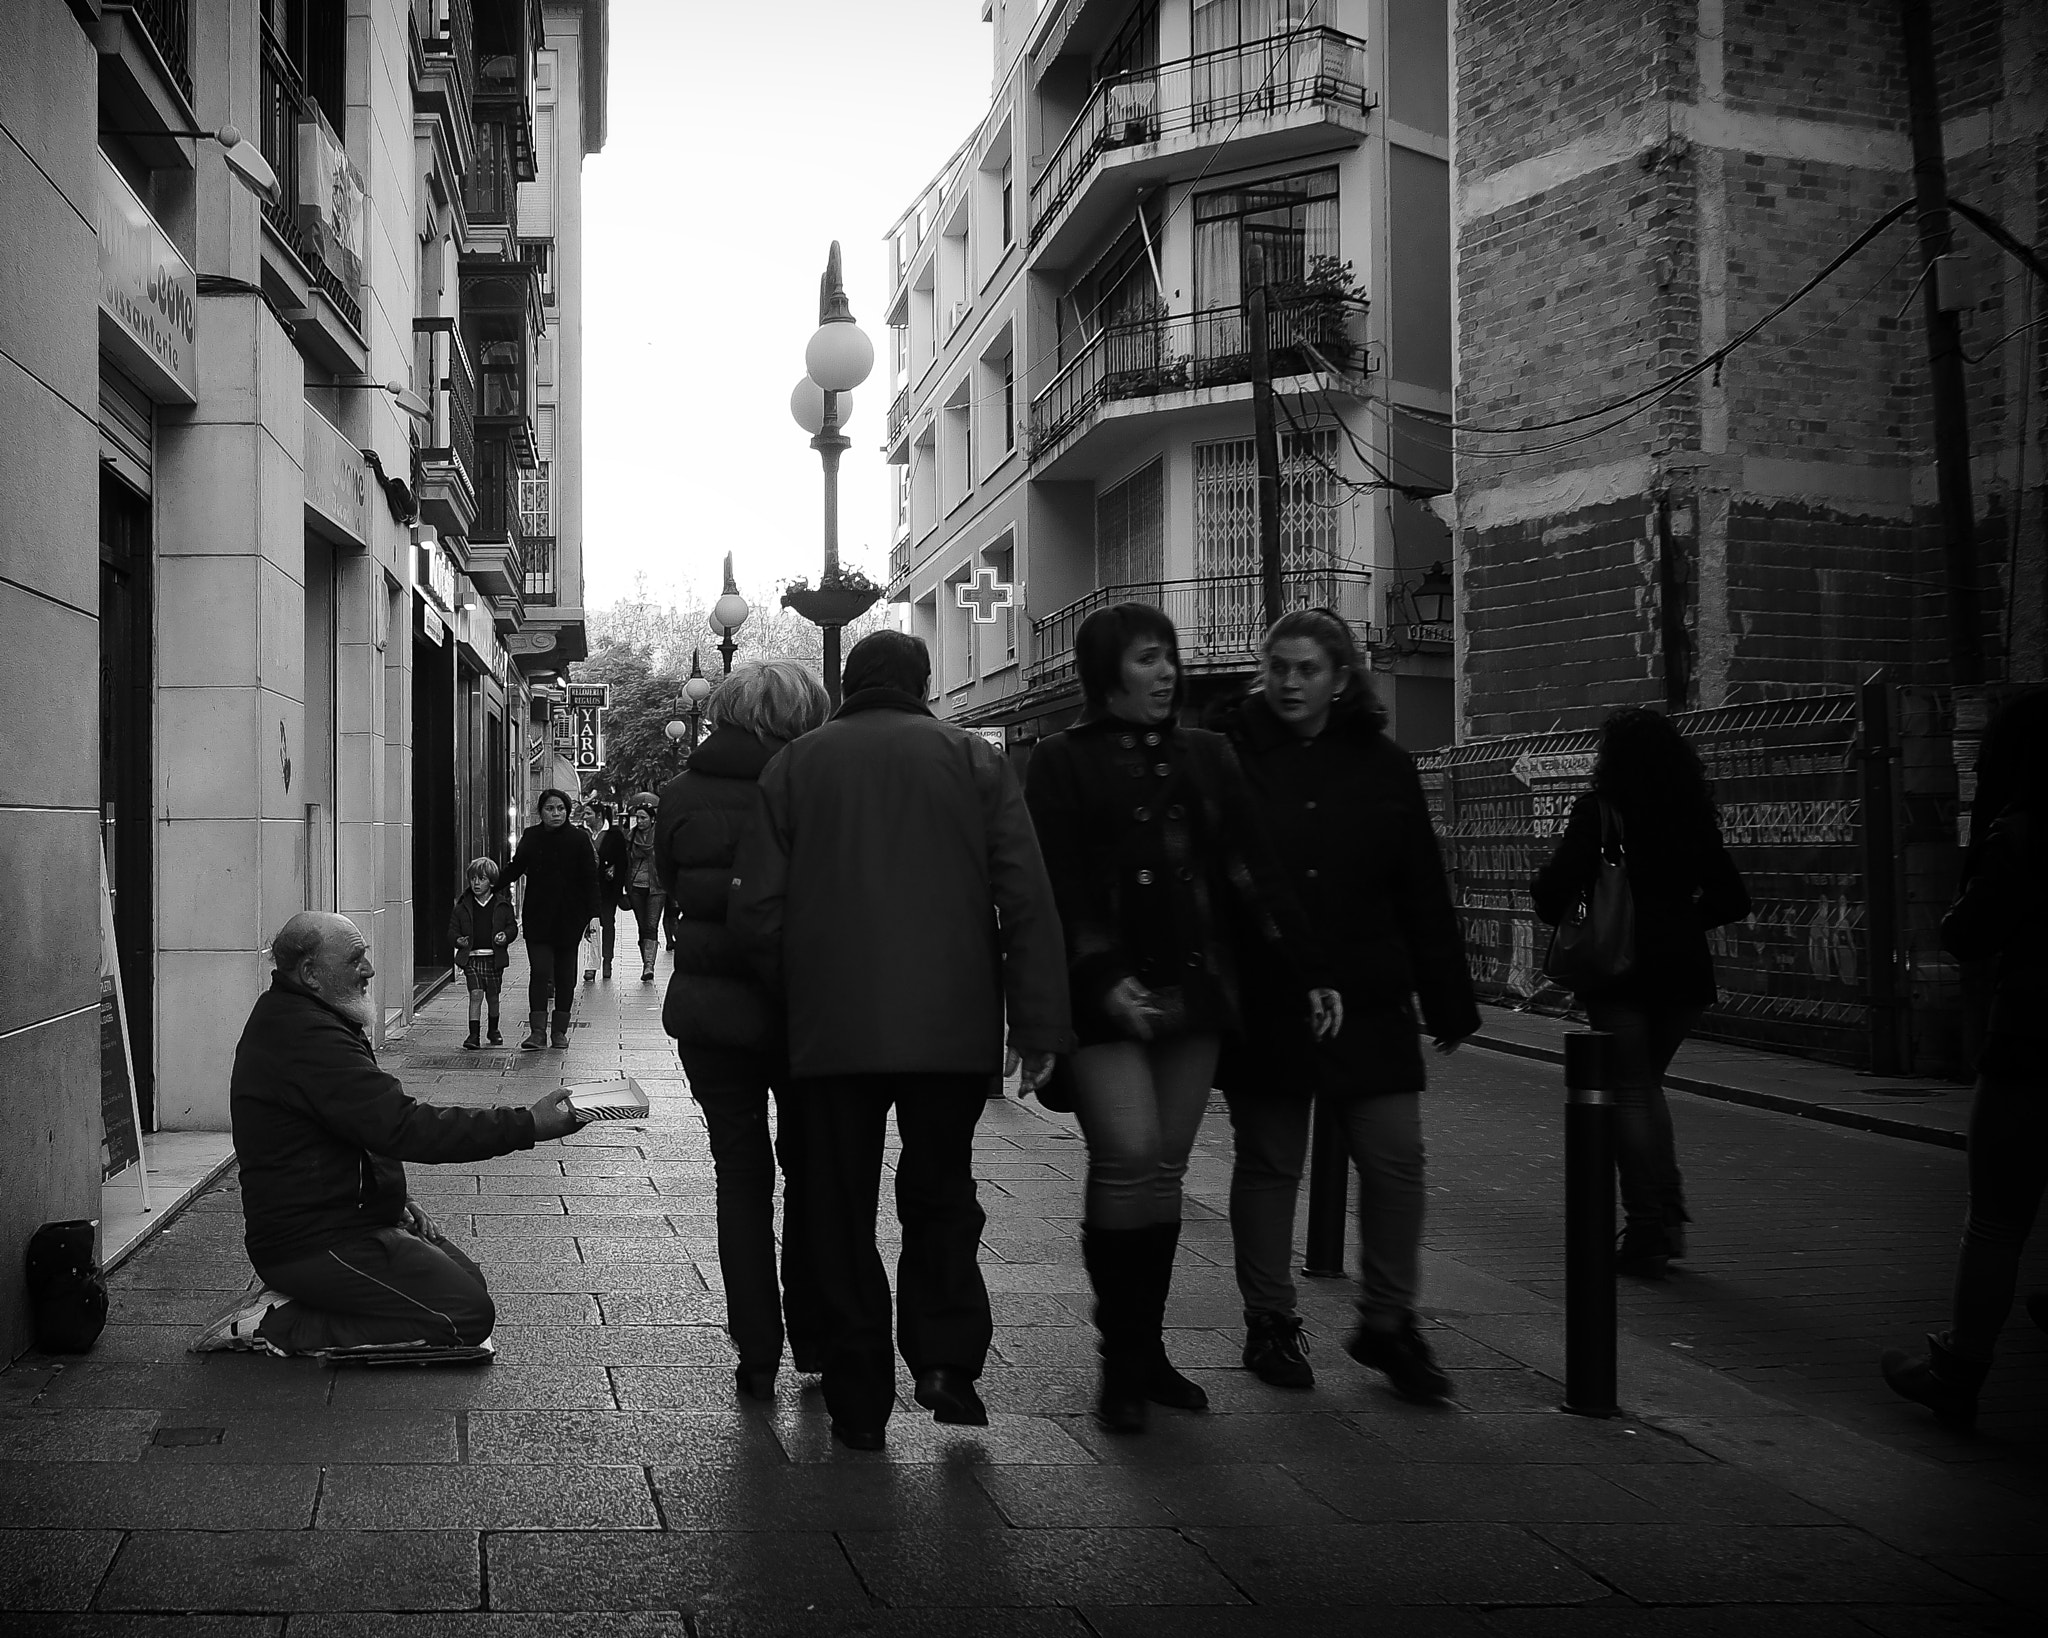 Photograph Indifference by Luis Zafra on 500px